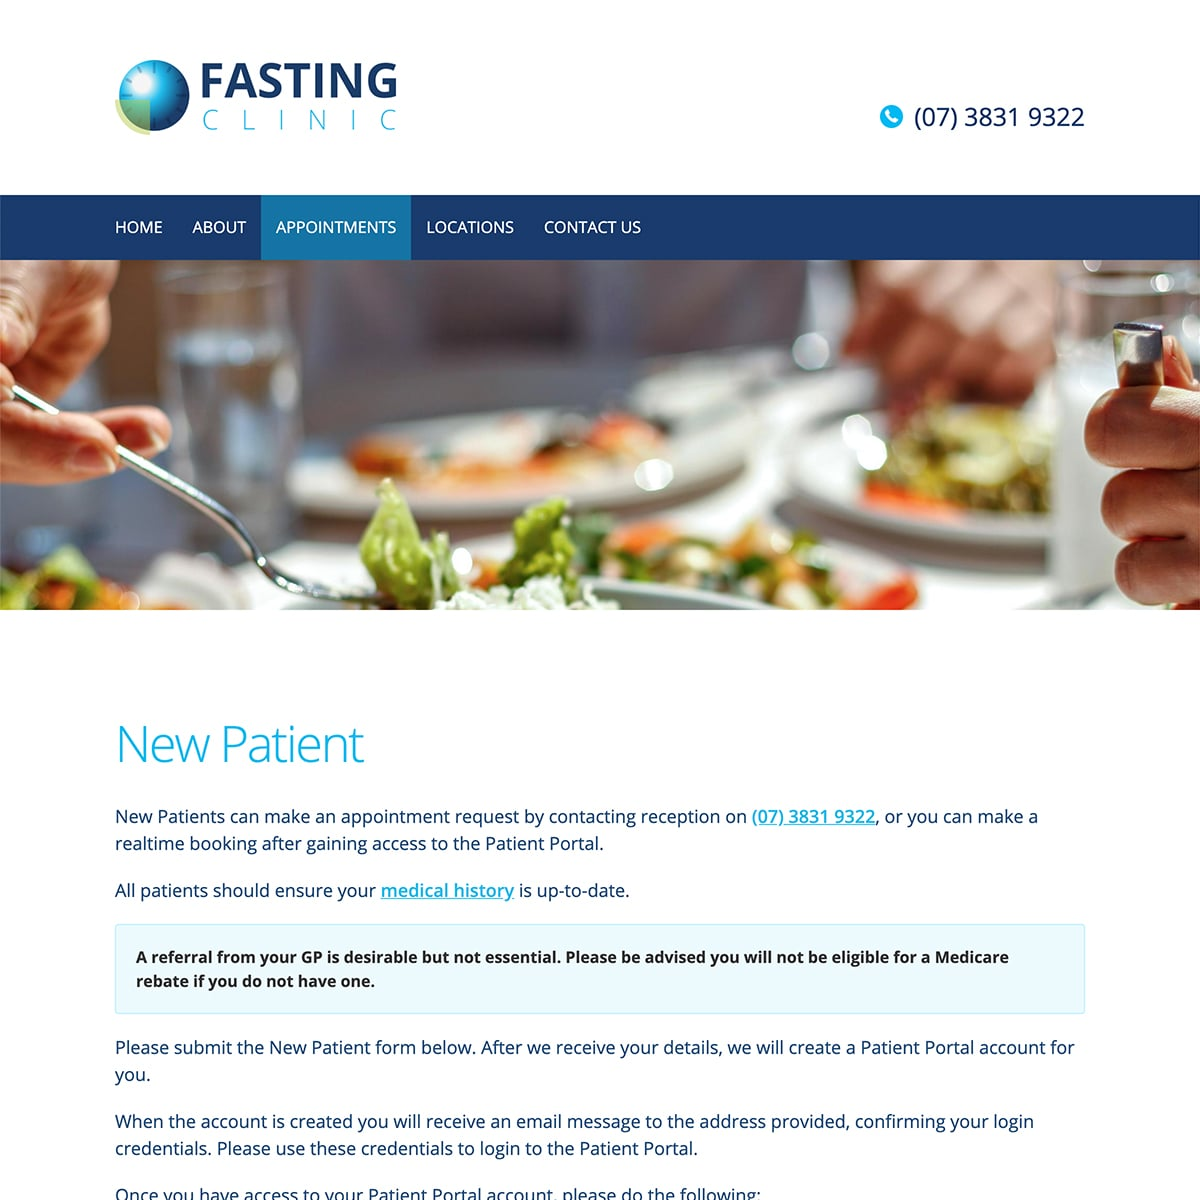 Fasting Clinic - Appointments